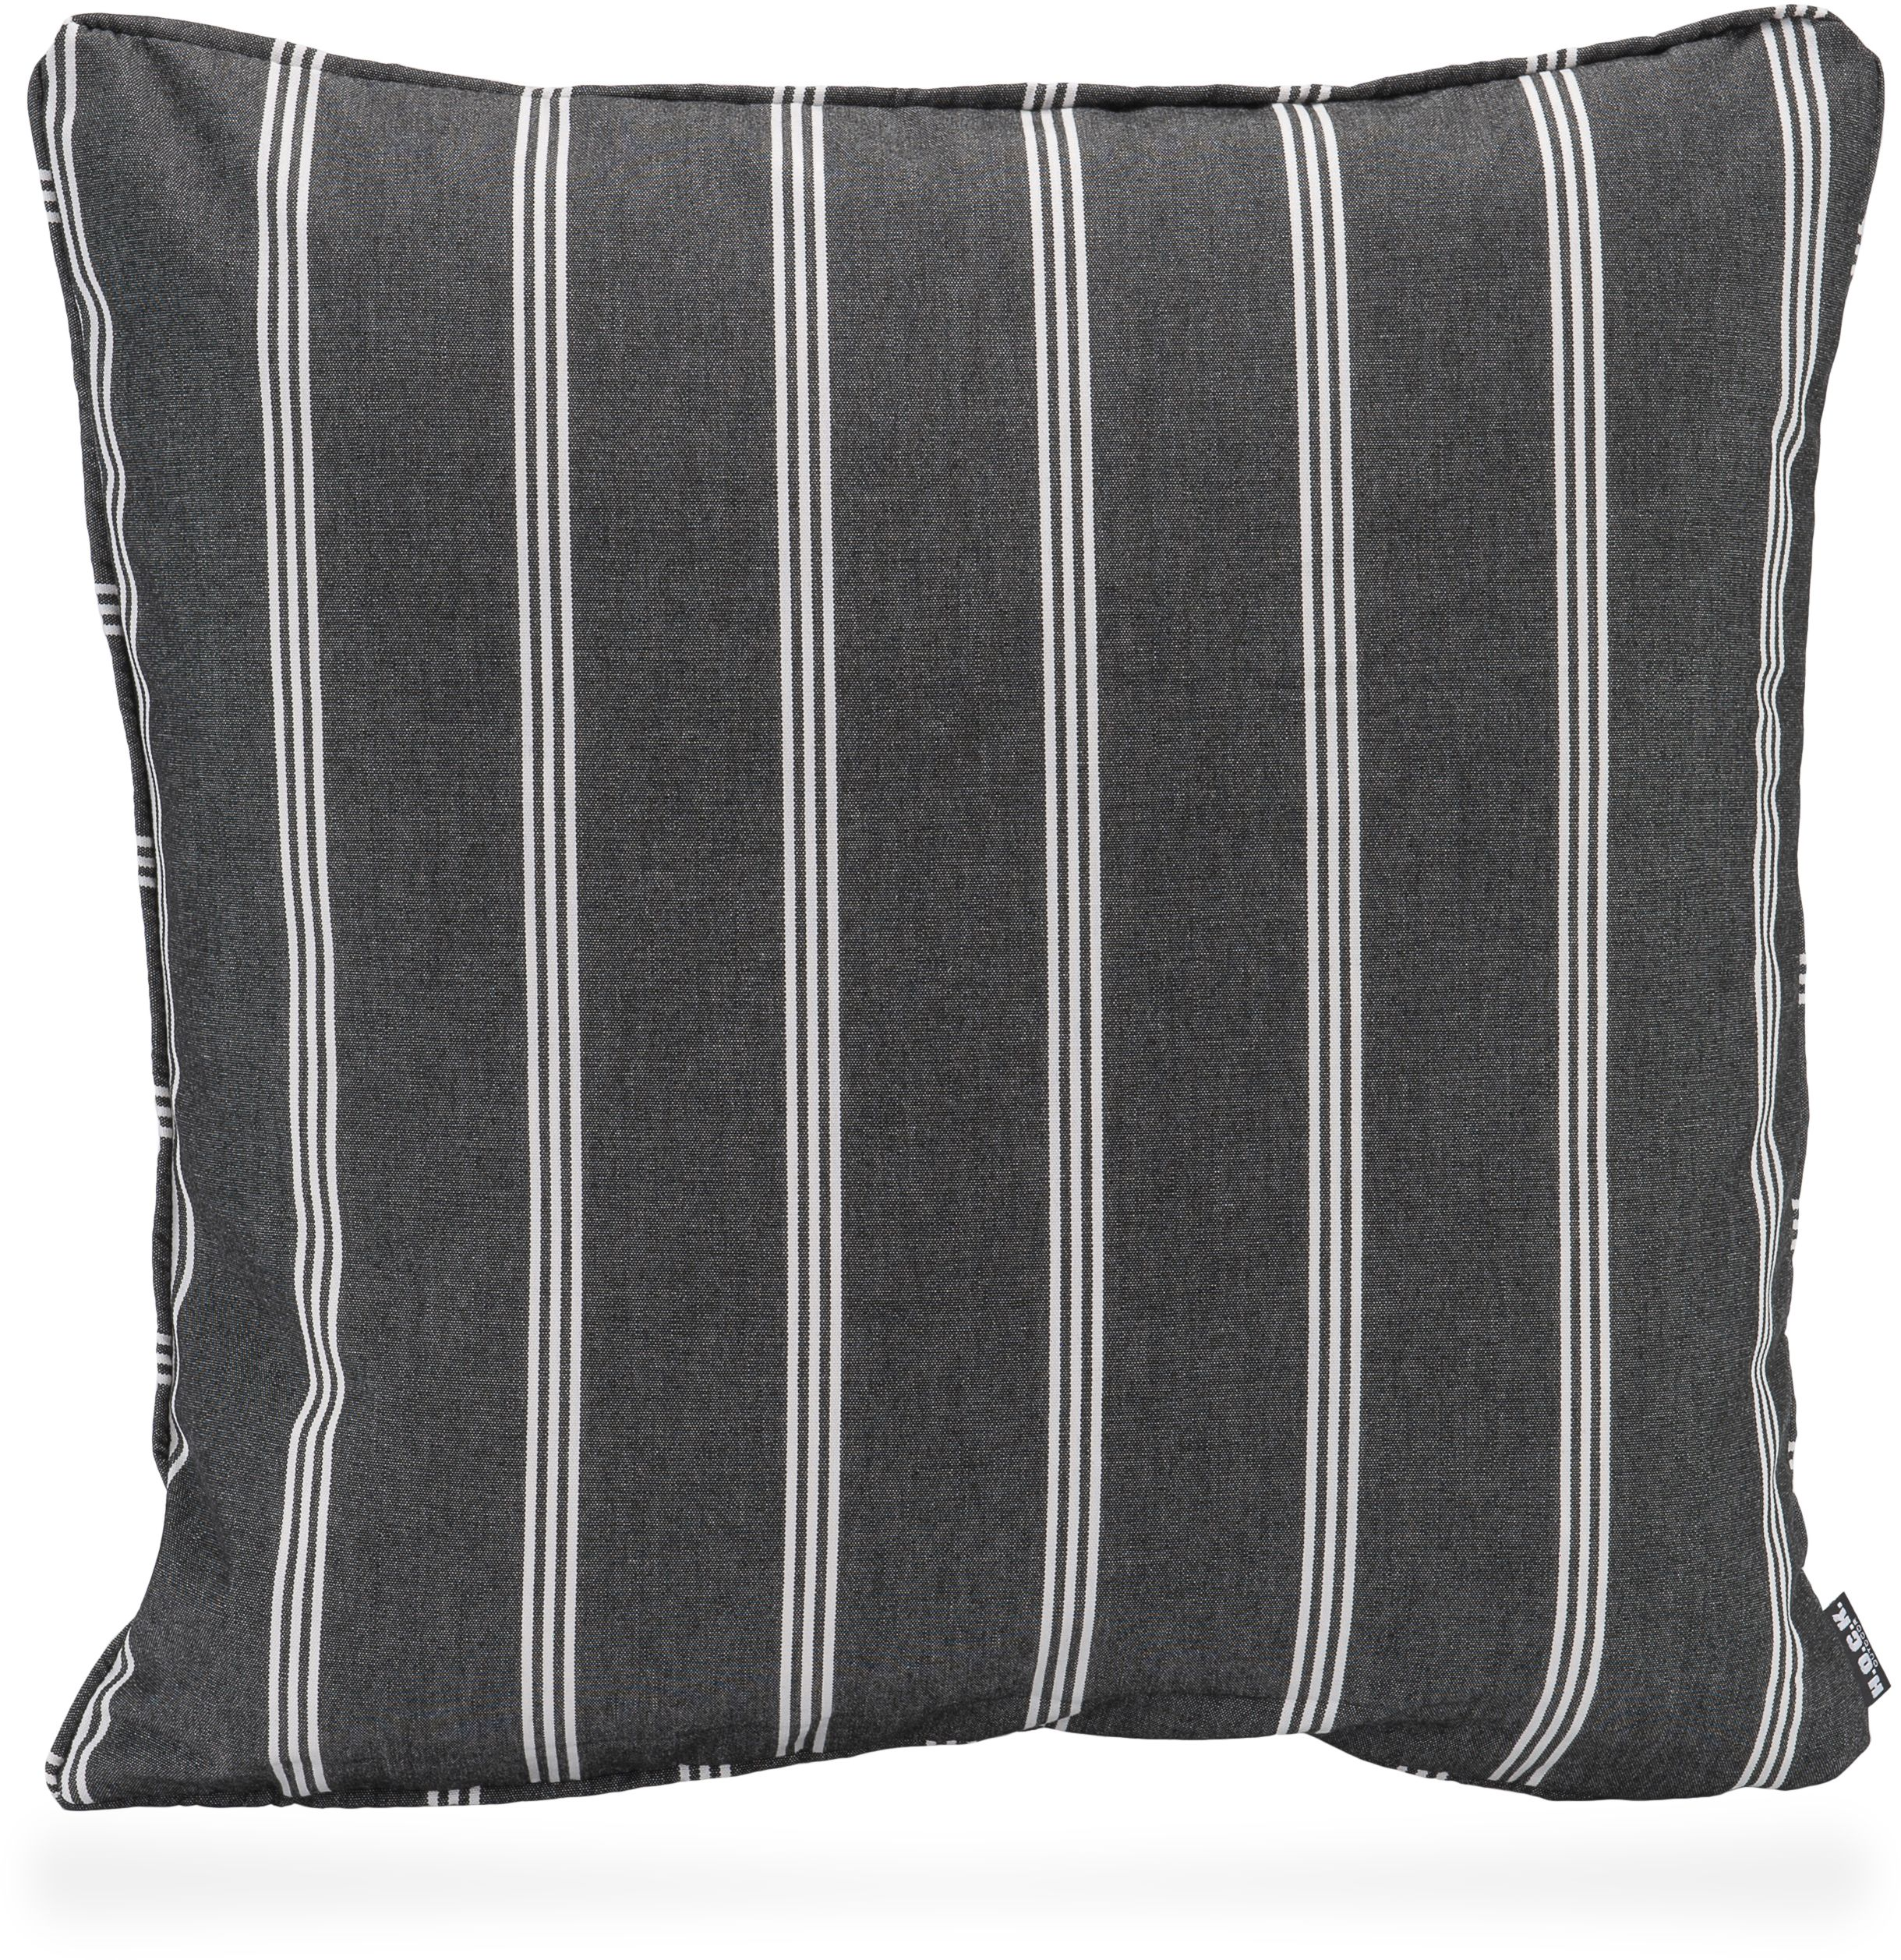 New England Outdoor Kissen 50x50 Black Stripes Kissen - Outdoor Kissen 50x50